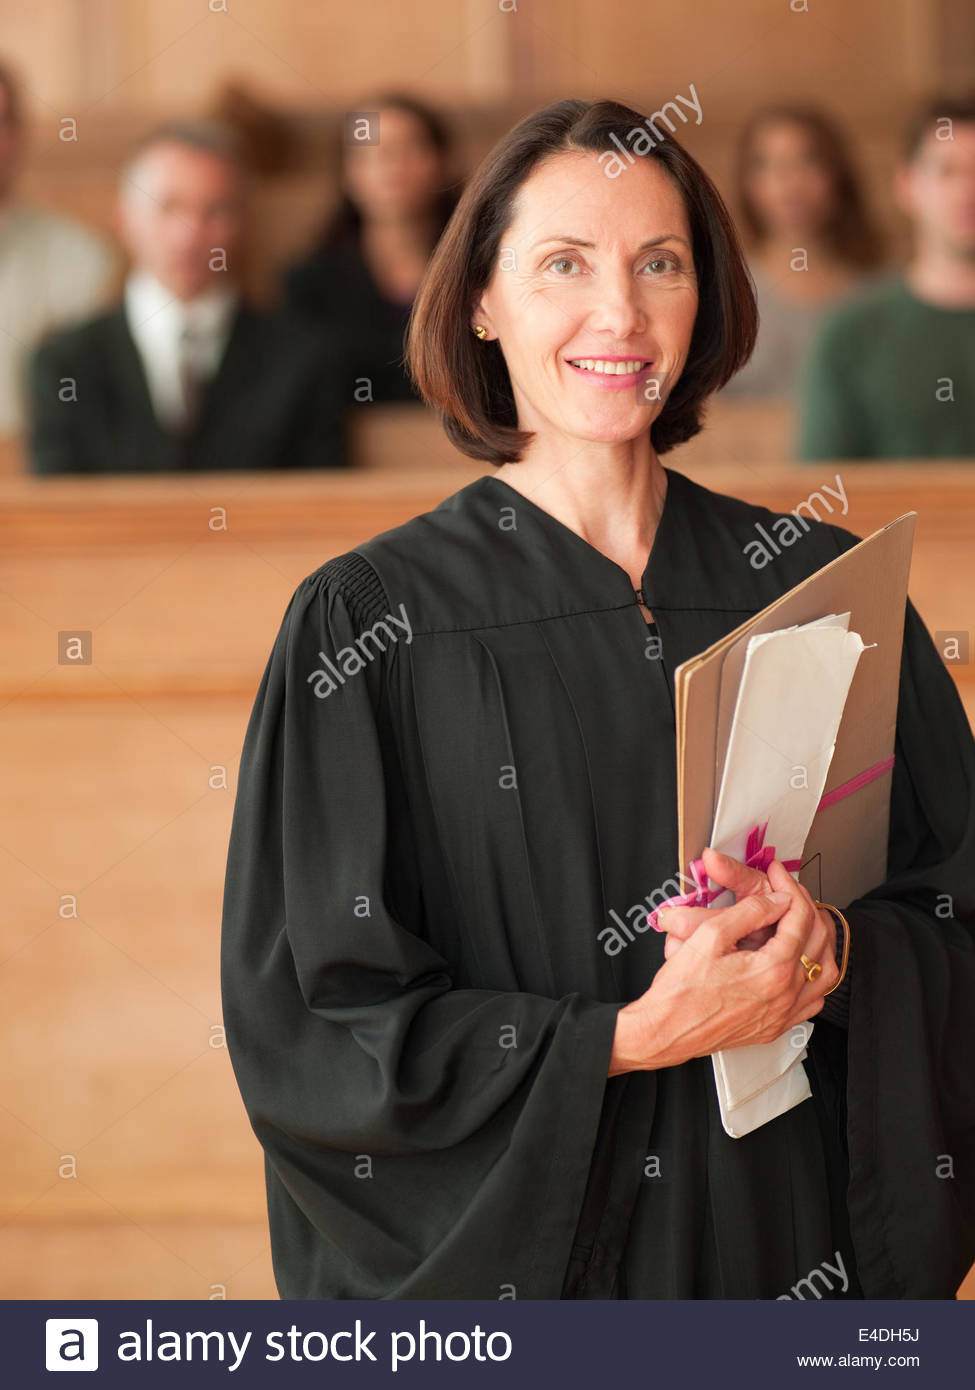 Smiling judge holding file in courtroom - Stock Image